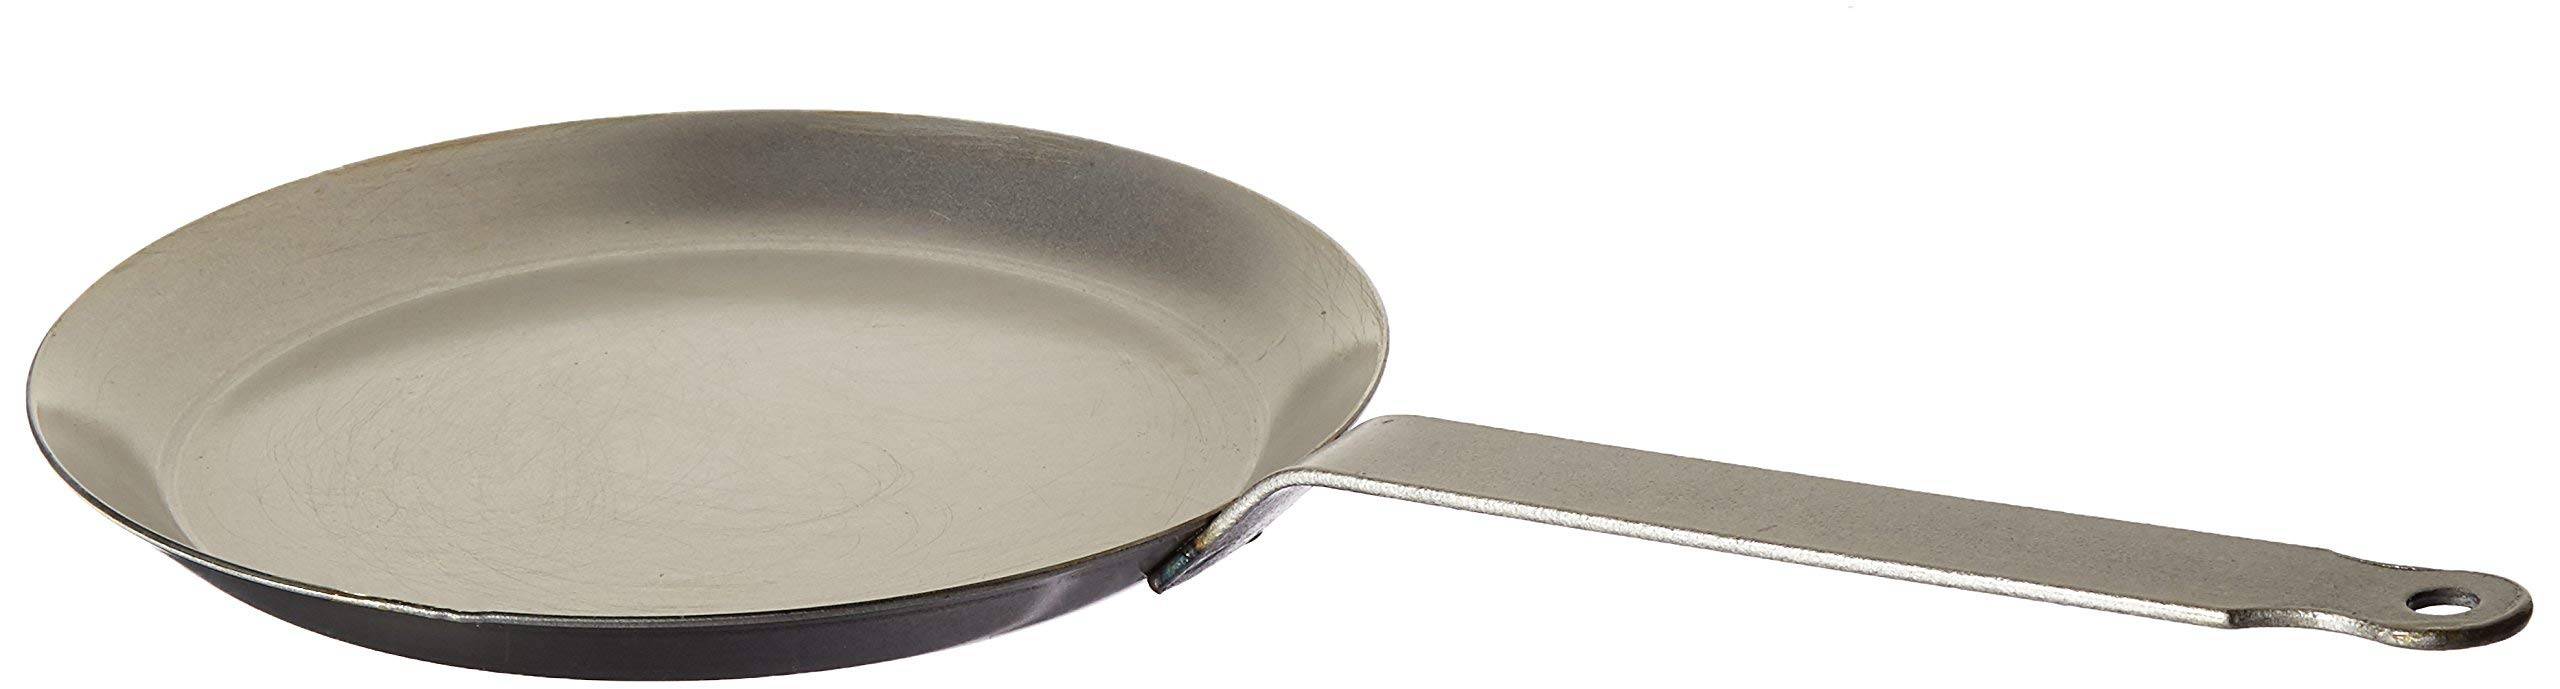 Matfer Bourgeat 062034 Round Crepe Pan, 9 1/2-Inch, Gray by Matfer Bourgeat